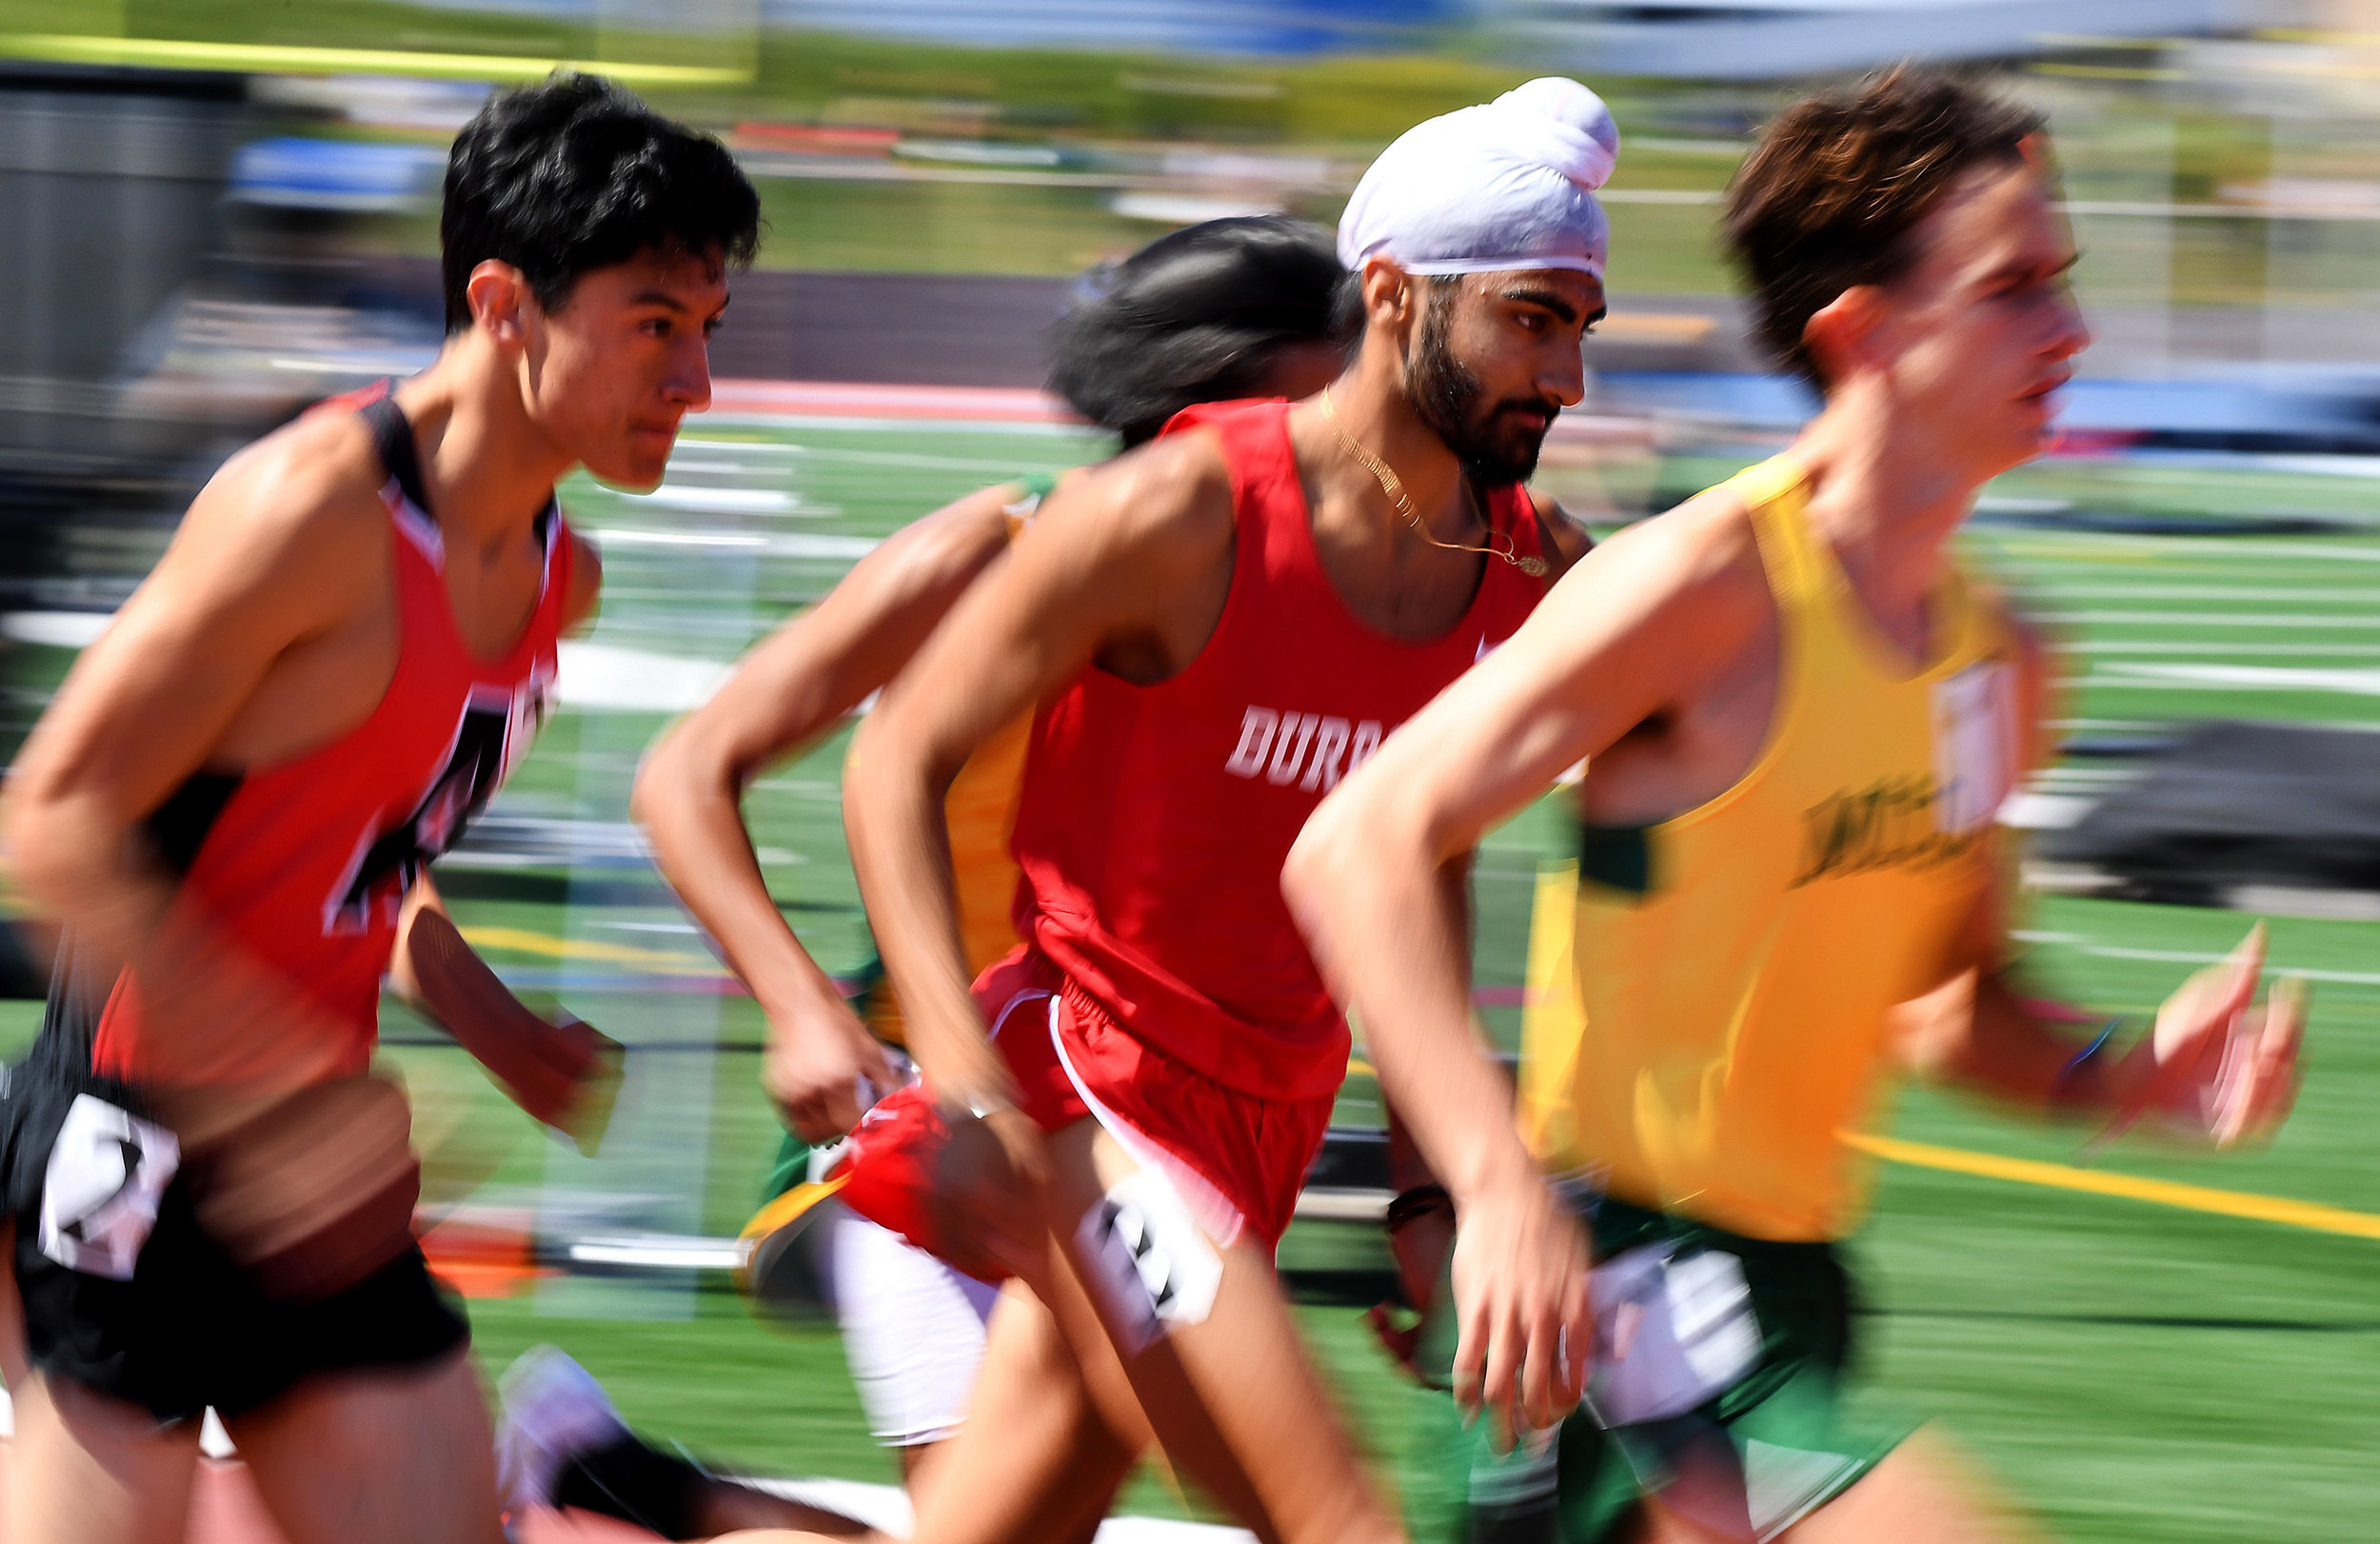 Burroughs' Jagdeep Chahal, center, finished third in the 3200 meter run as Mira Costa's Xavier Court  wins during the CIF-SS Track and Field Masters meet at El Camino College in Torrance, Calif., on Saturday, May 26, 2018.